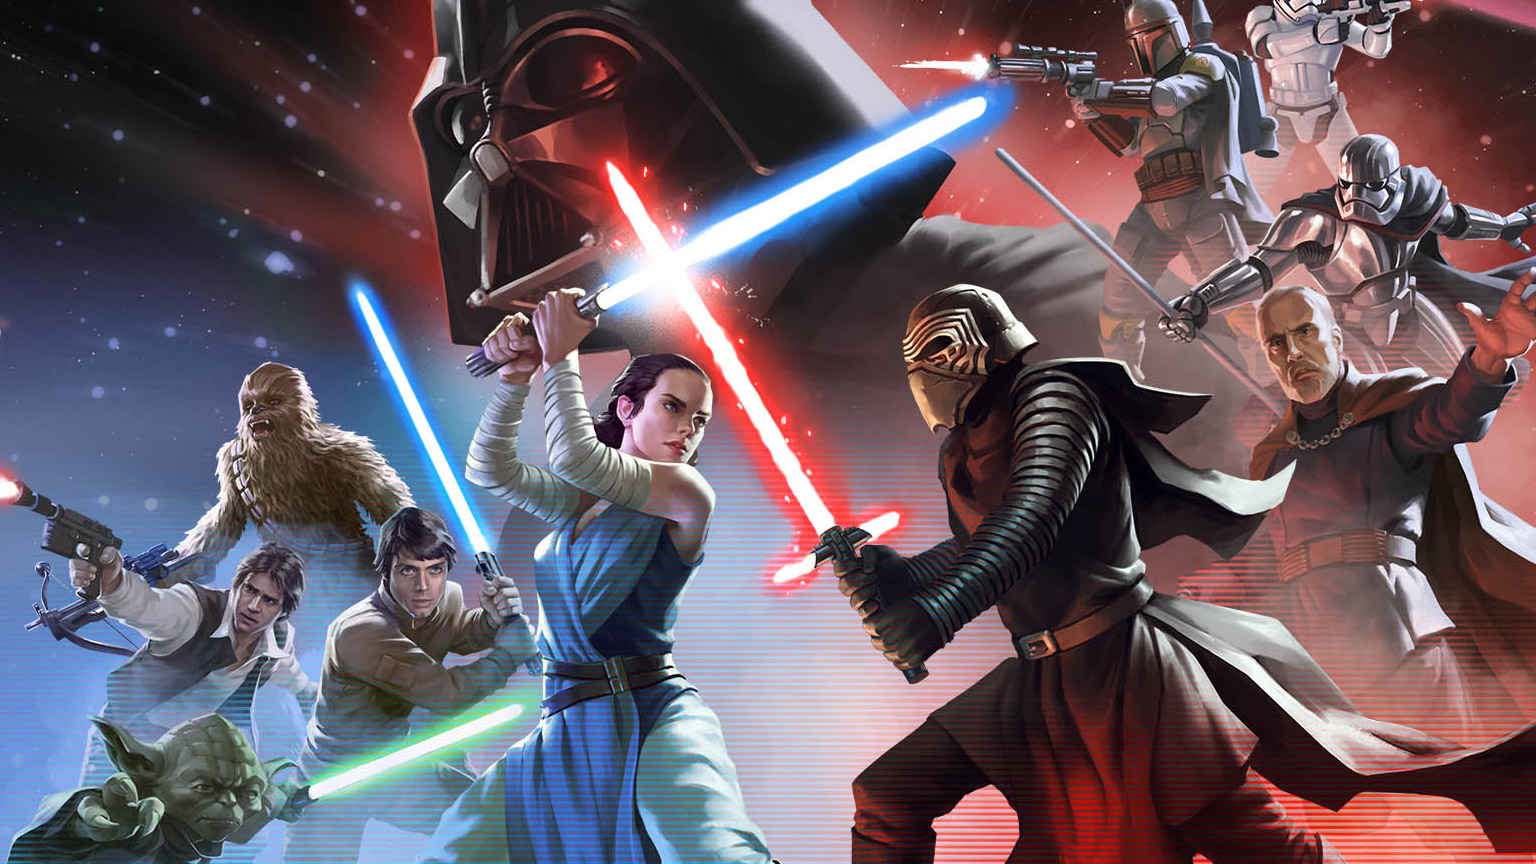 The Rise Of Skywalker Video Game Content Coming In New Upgrades To Existing Games